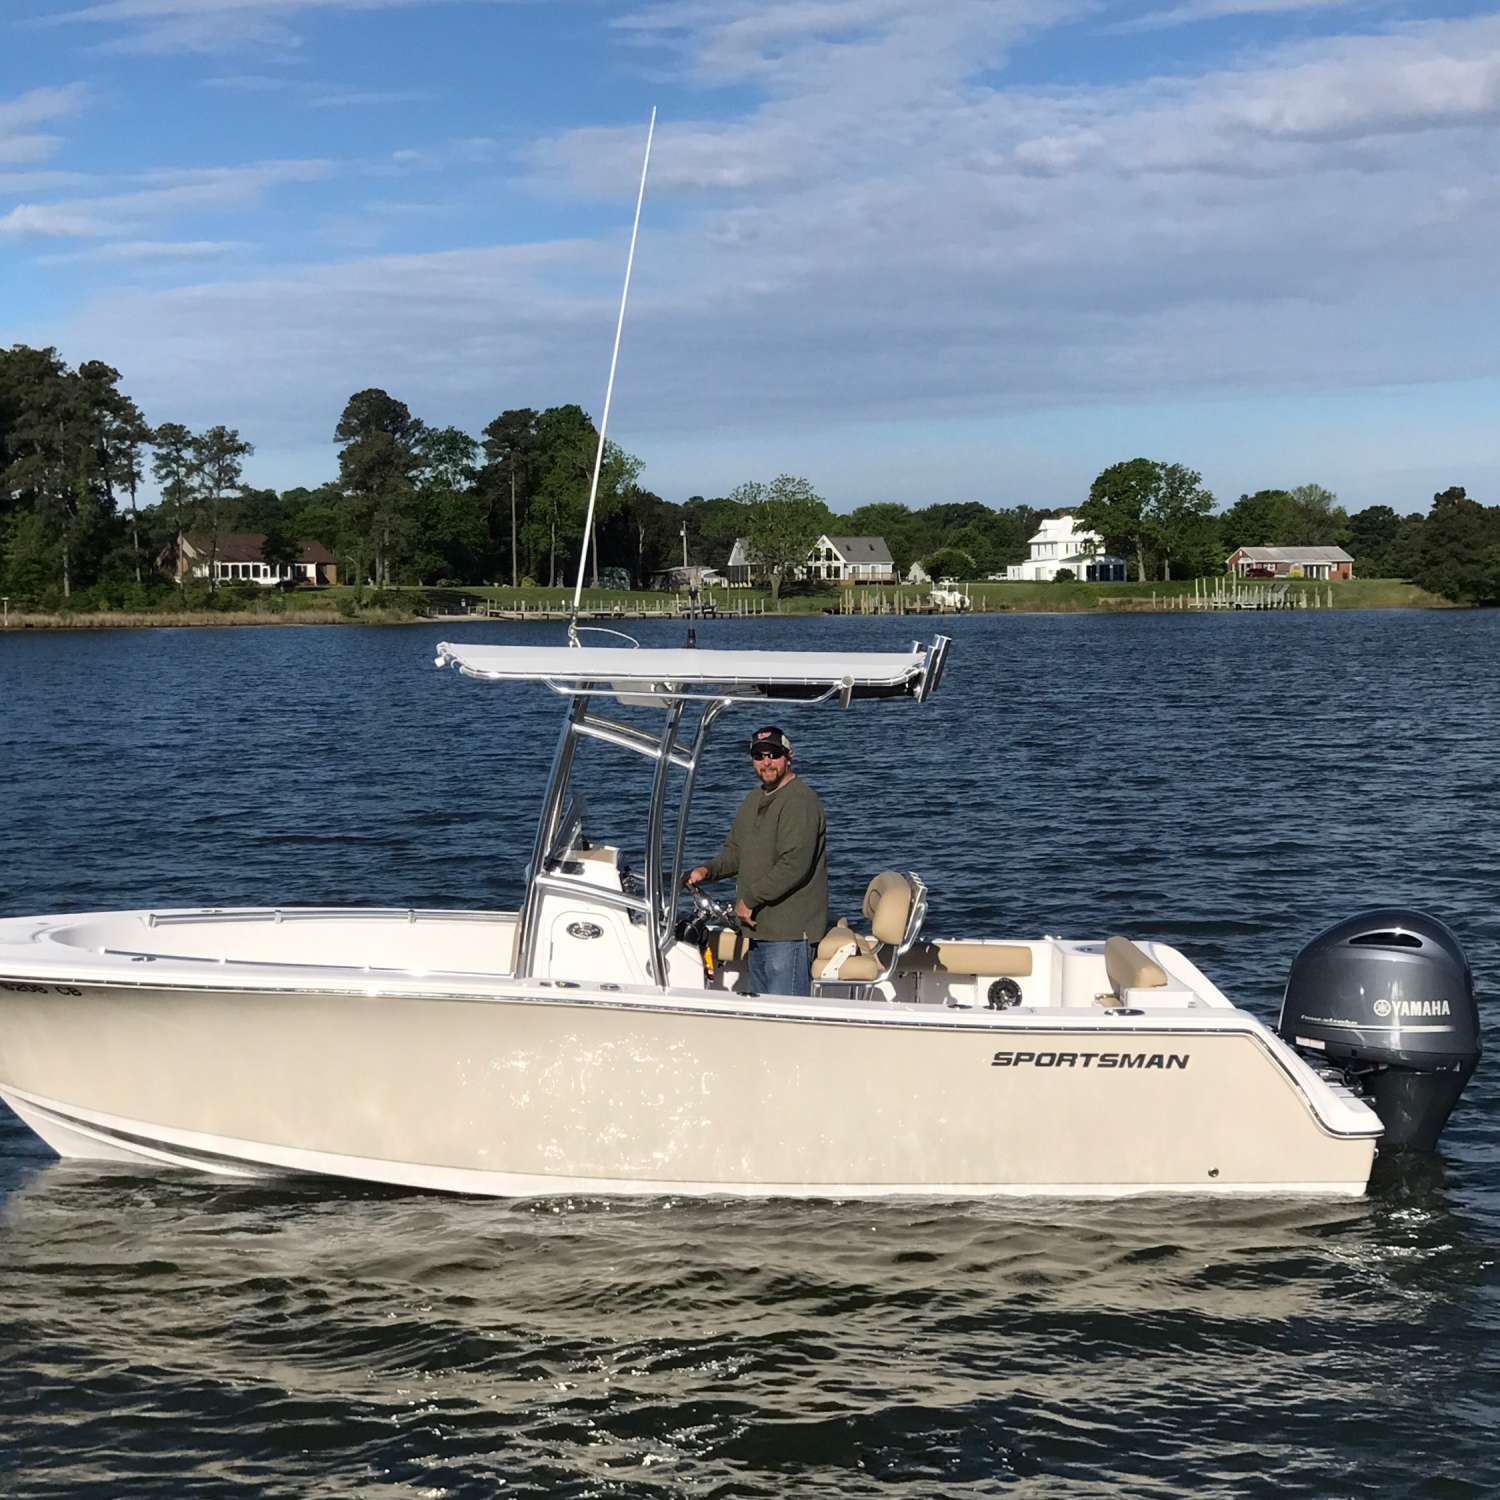 Title: Maiden Voyage In My 232 Open - On board their Sportsman Open 232 Center Console - Location: Silver Spring, Maryland. Participating in the Photo Contest #SportsmanMay2017